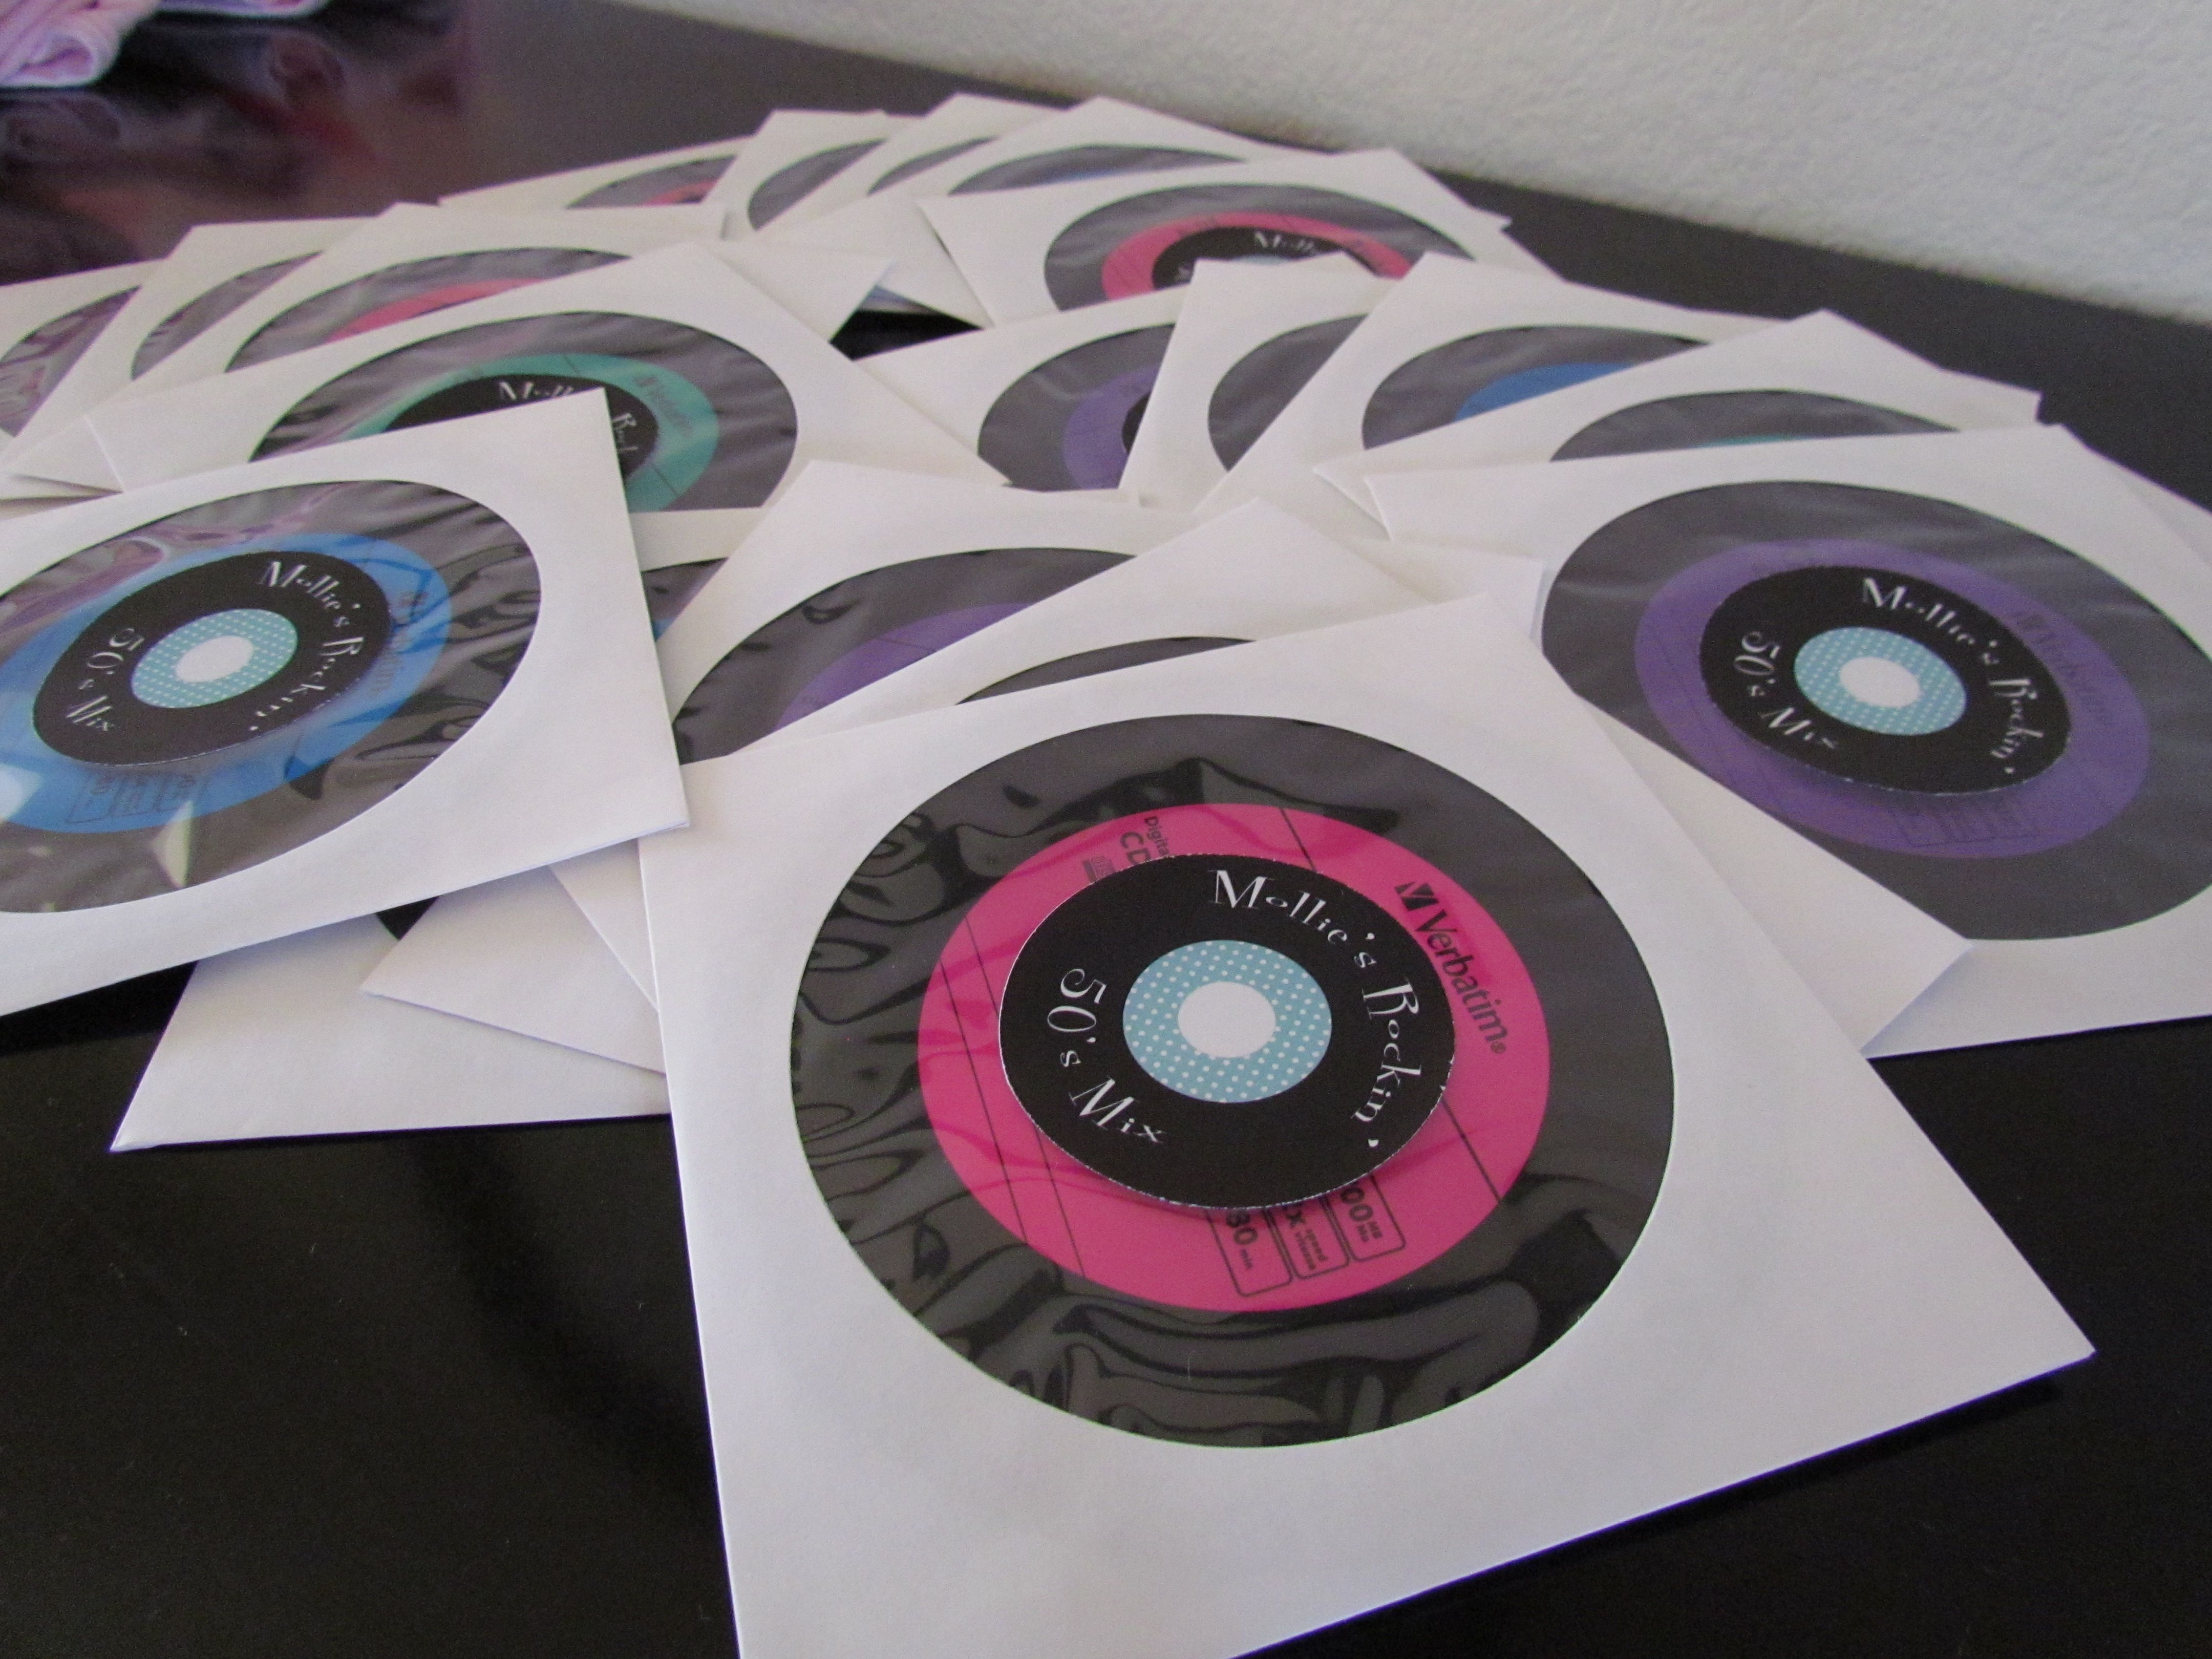 Party Favor Cds That Look Like Records Found On Amazon With A 50s Mix Sleeves And Personalized Labels